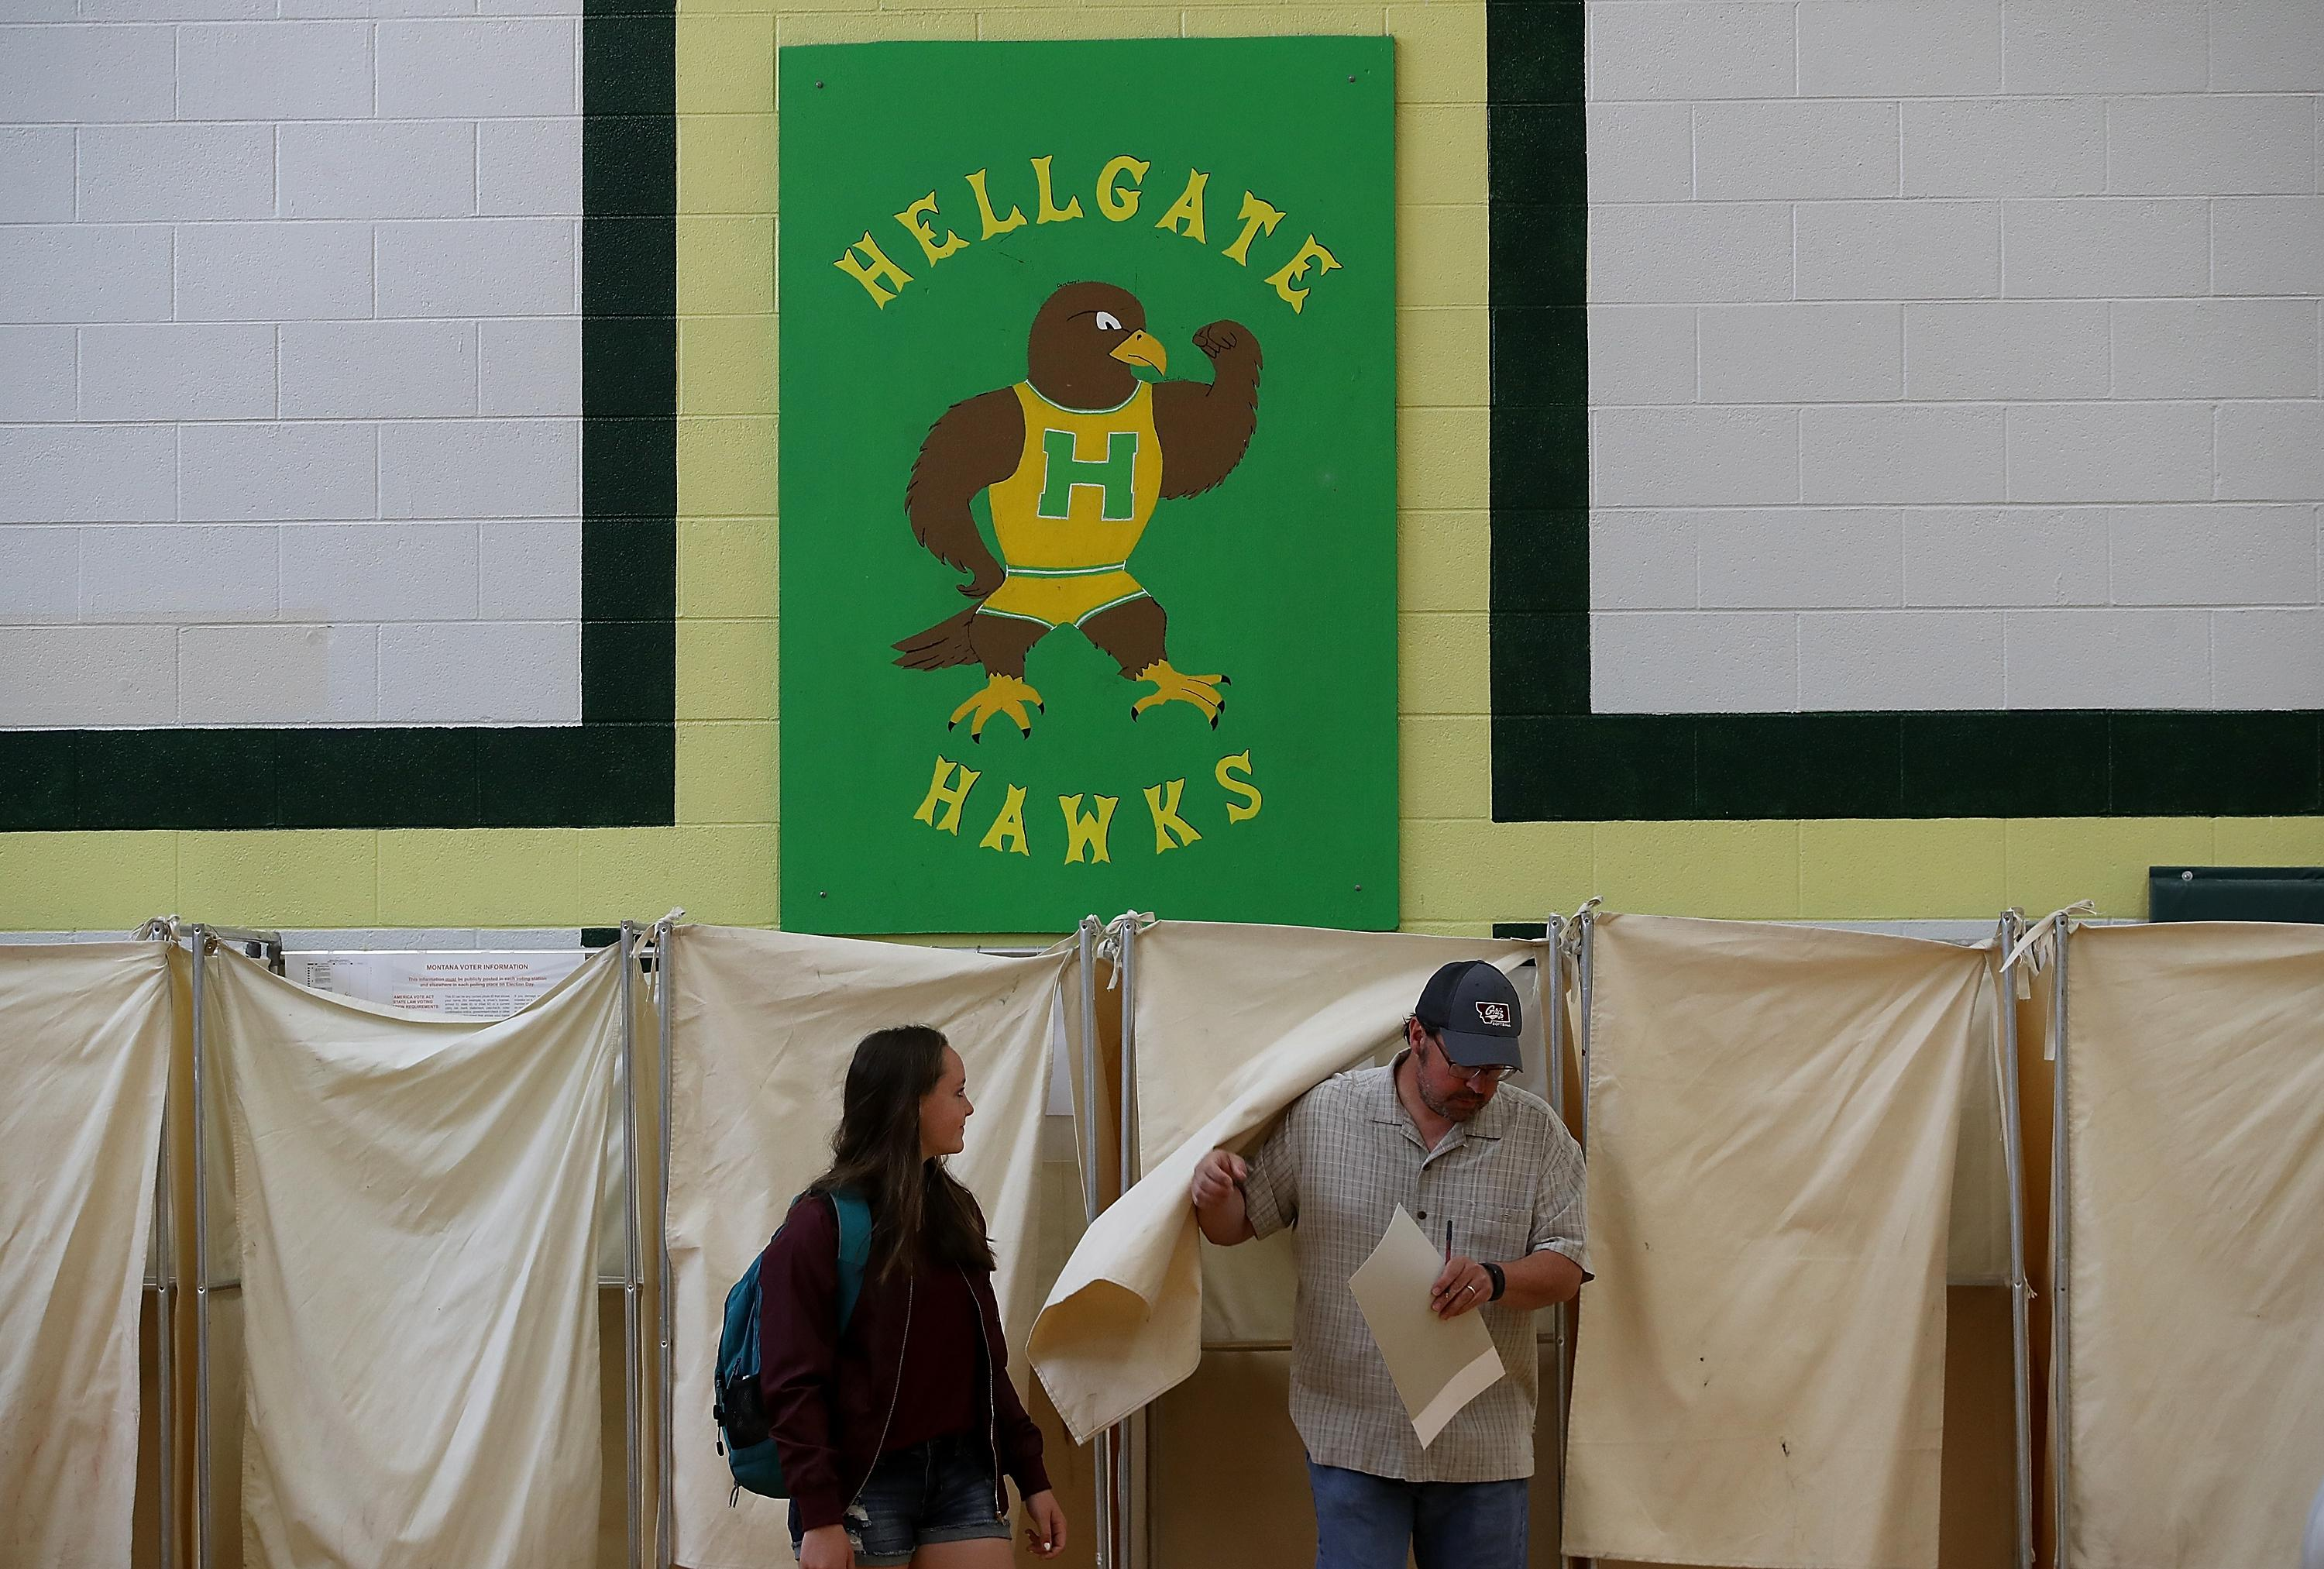 A voter exits a voting booth in a polling station at Hellgate Elementary School on May 25, 2017 in Missoula, Montana.